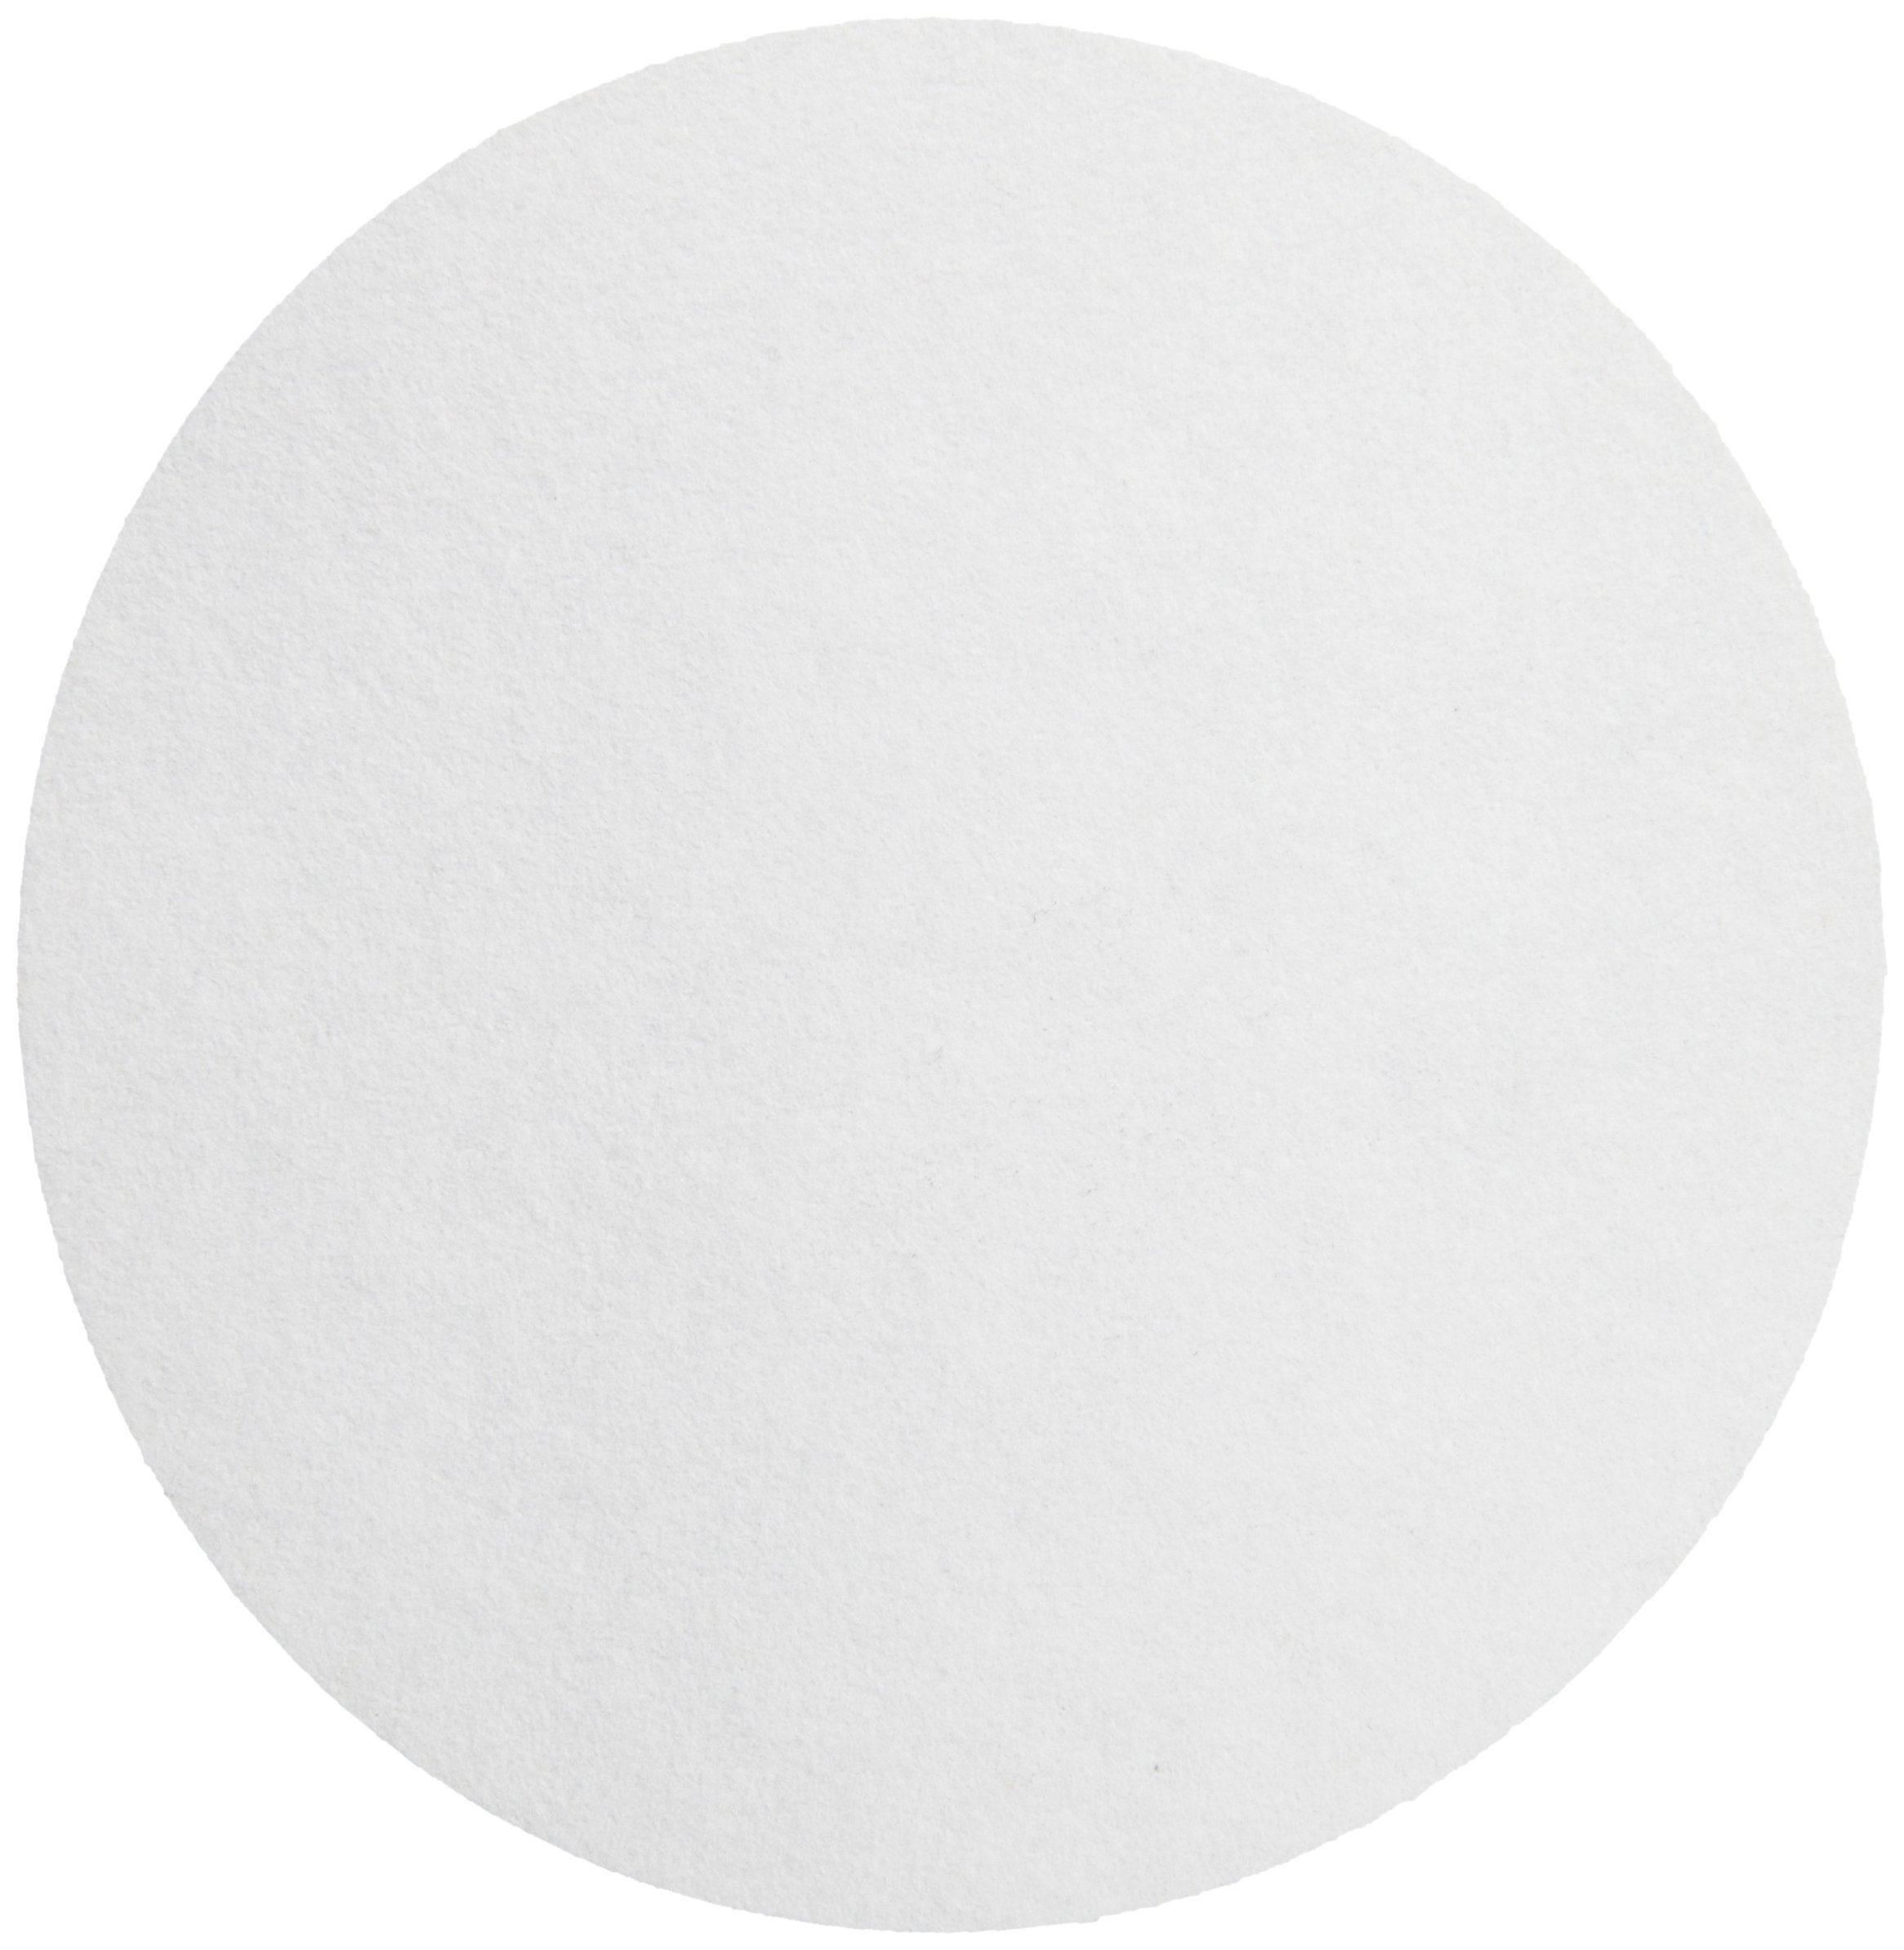 Whatman 1541-125 Quantitative Filter Paper Circles, 22 Micron, Grade 541, 125mm Diameter (Pack of 100) by Whatman